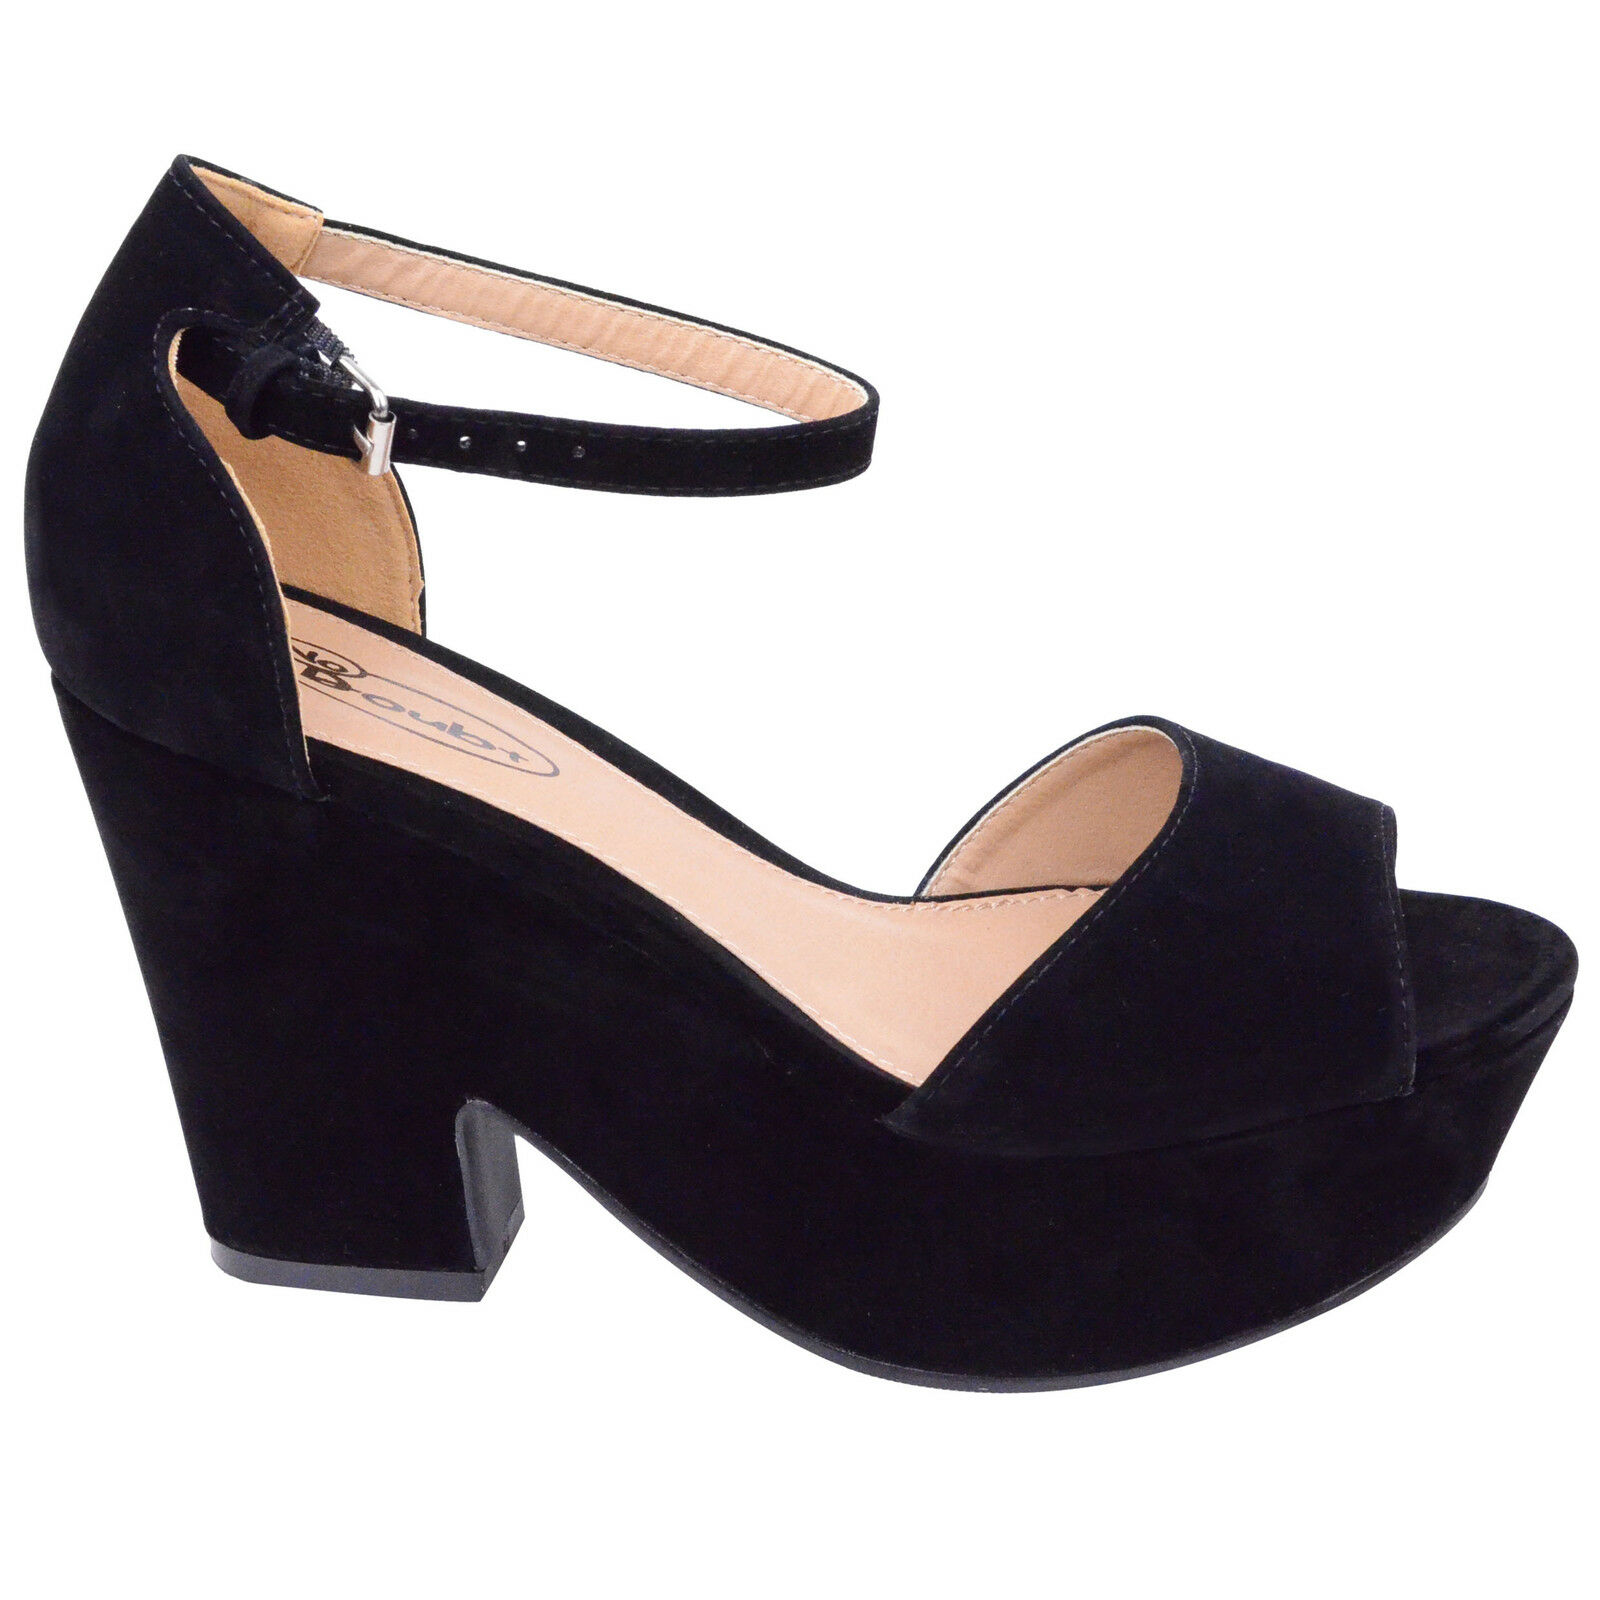 Black Ankle Strap Shoes | Heels | eBay